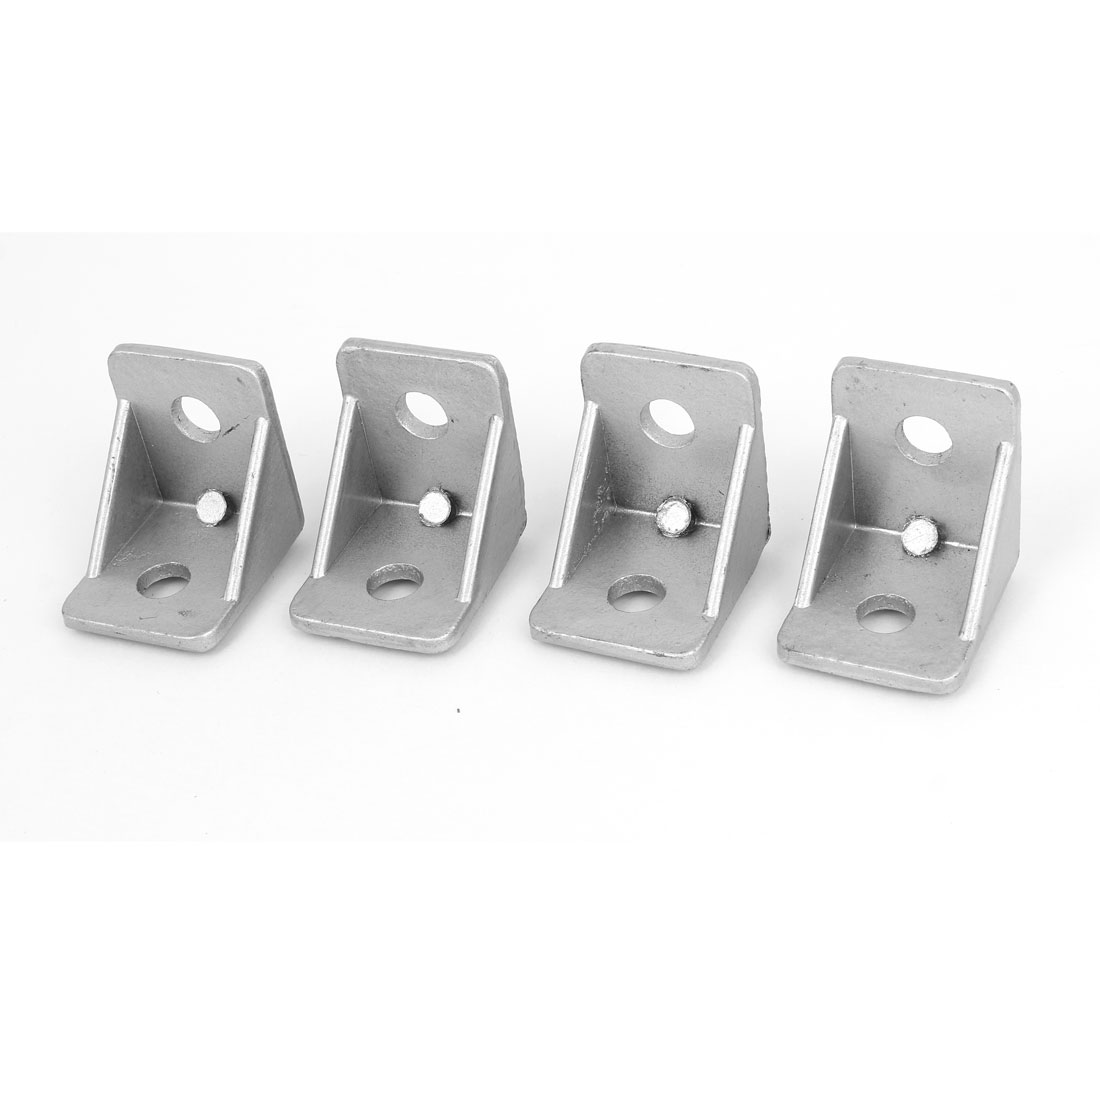 4 Pcs 30mmx30mm Corner Brace Joint Right Angle Bracket Fastener